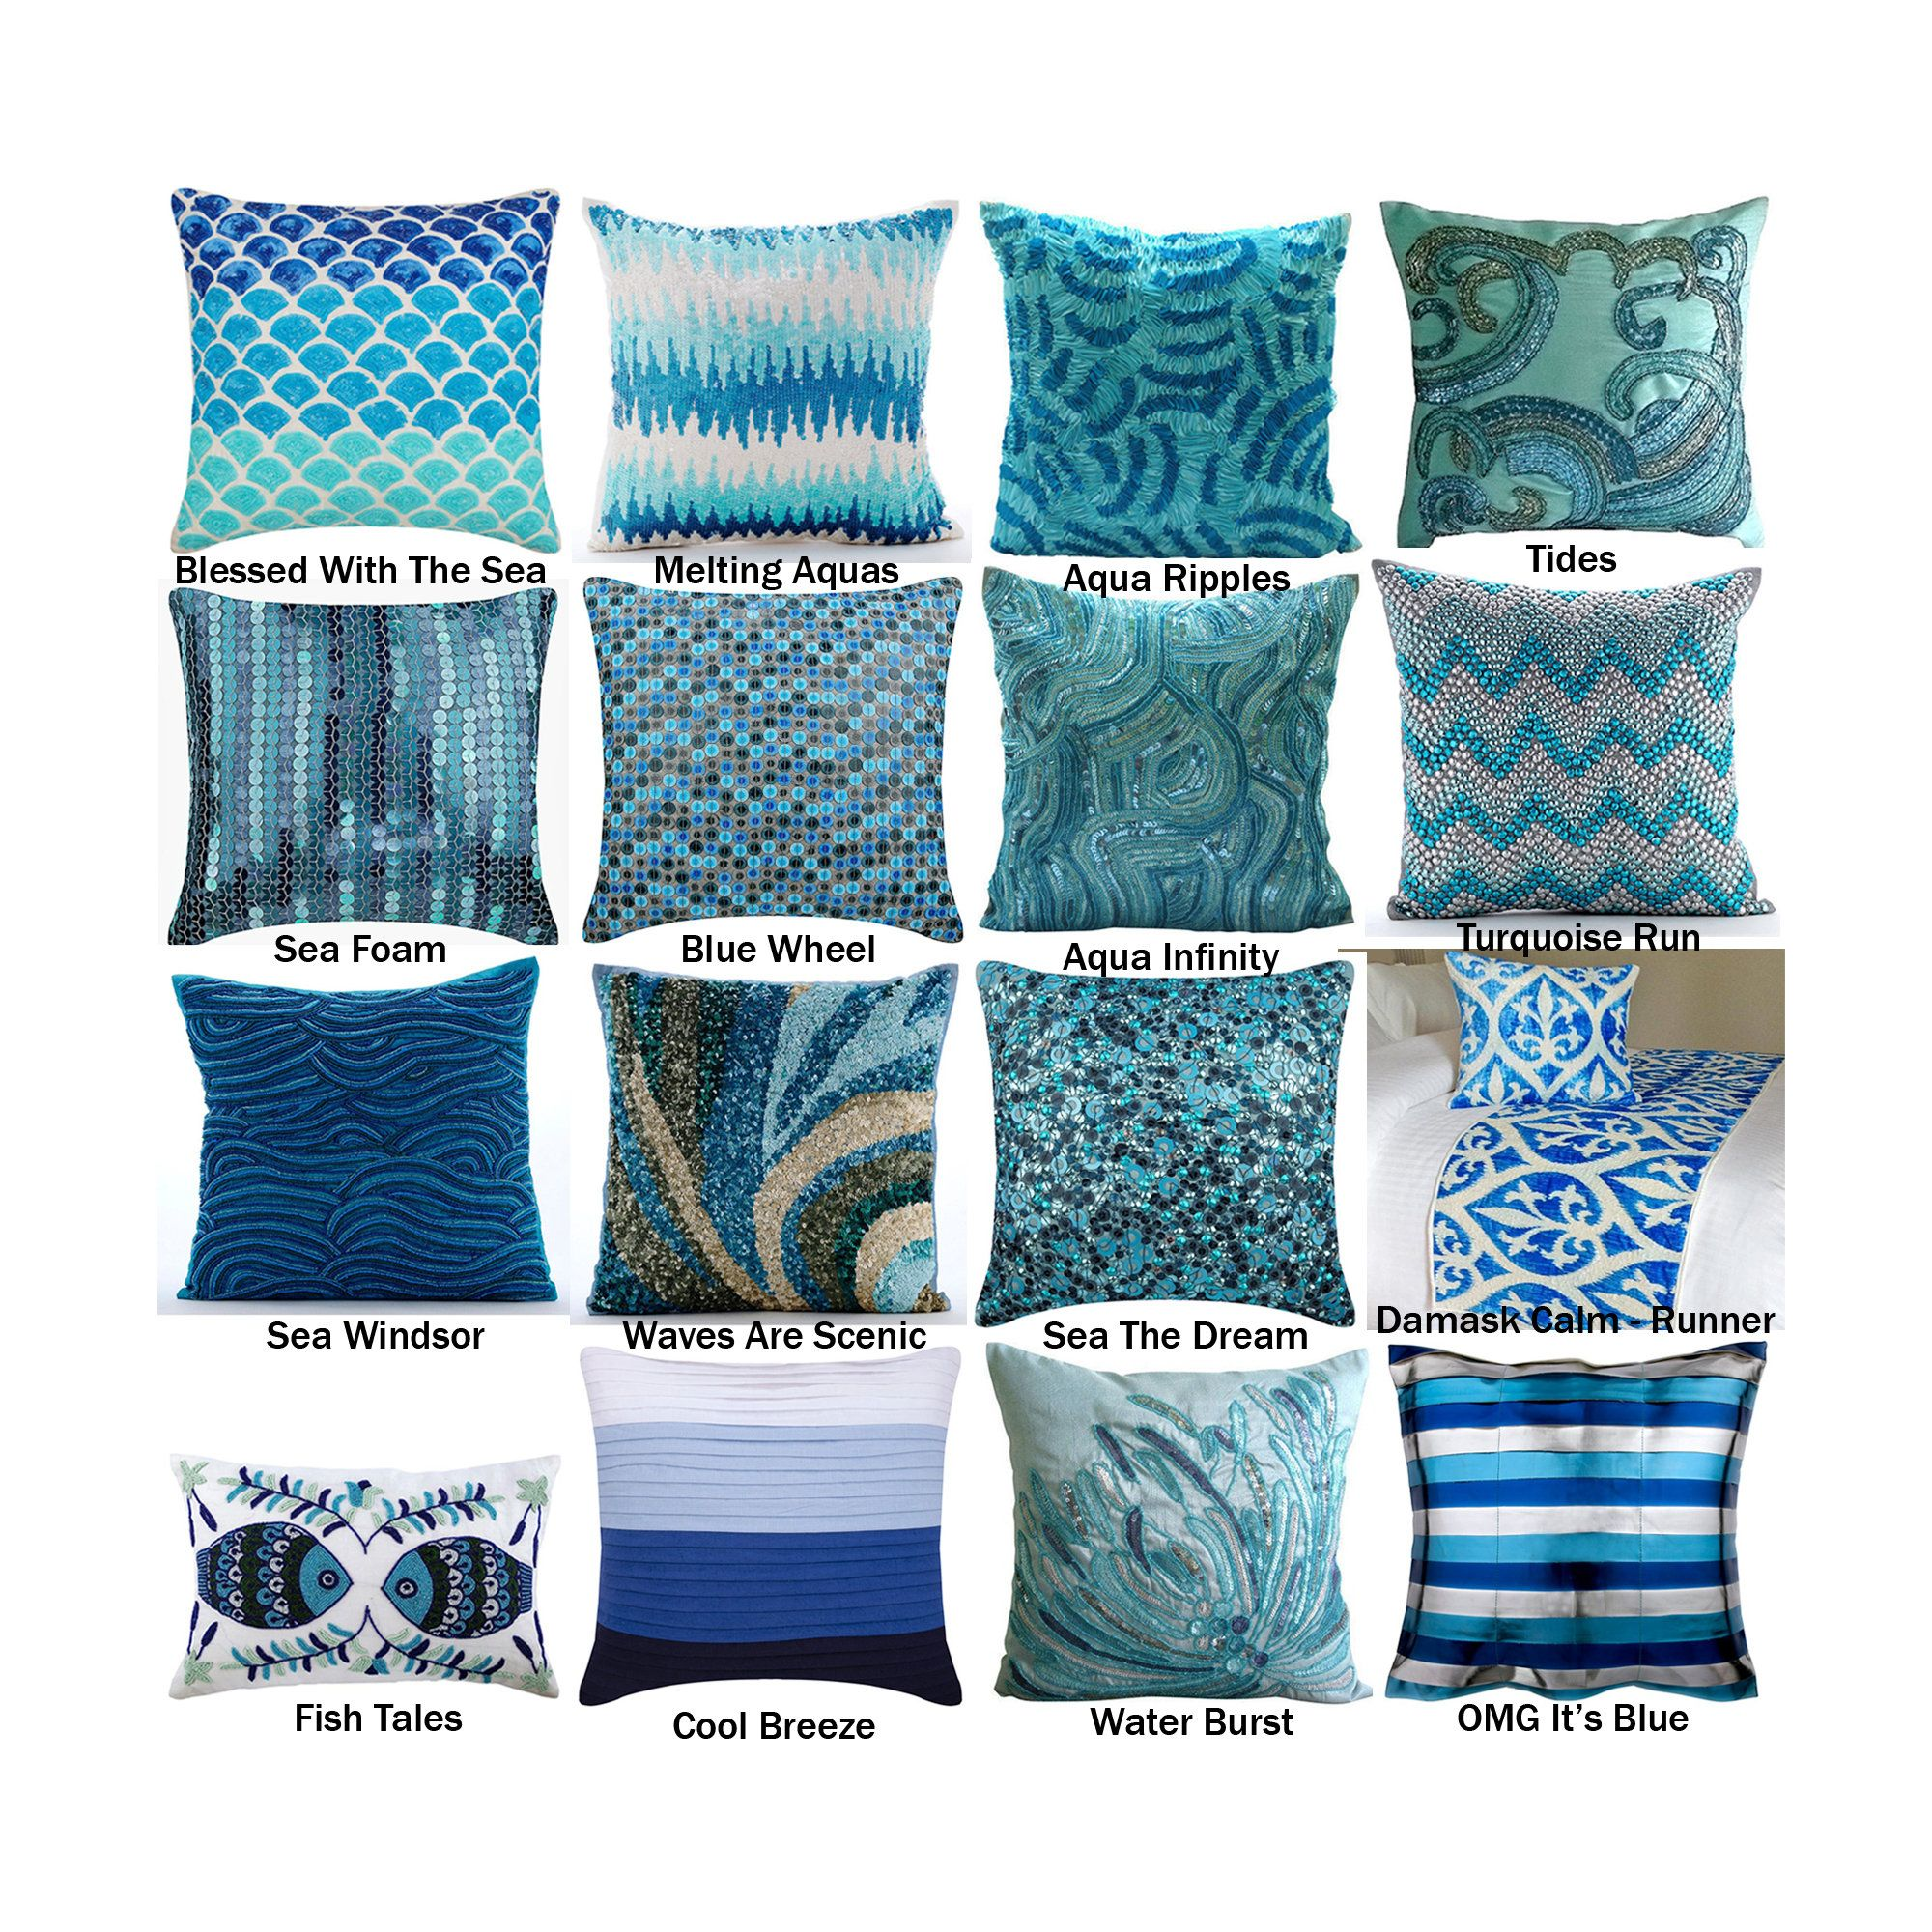 The Ocean Collection Pillow Covers Aqua Decorative Throw Etsy In 2020 Bed Runner Pillows Ocean Themed Pillows